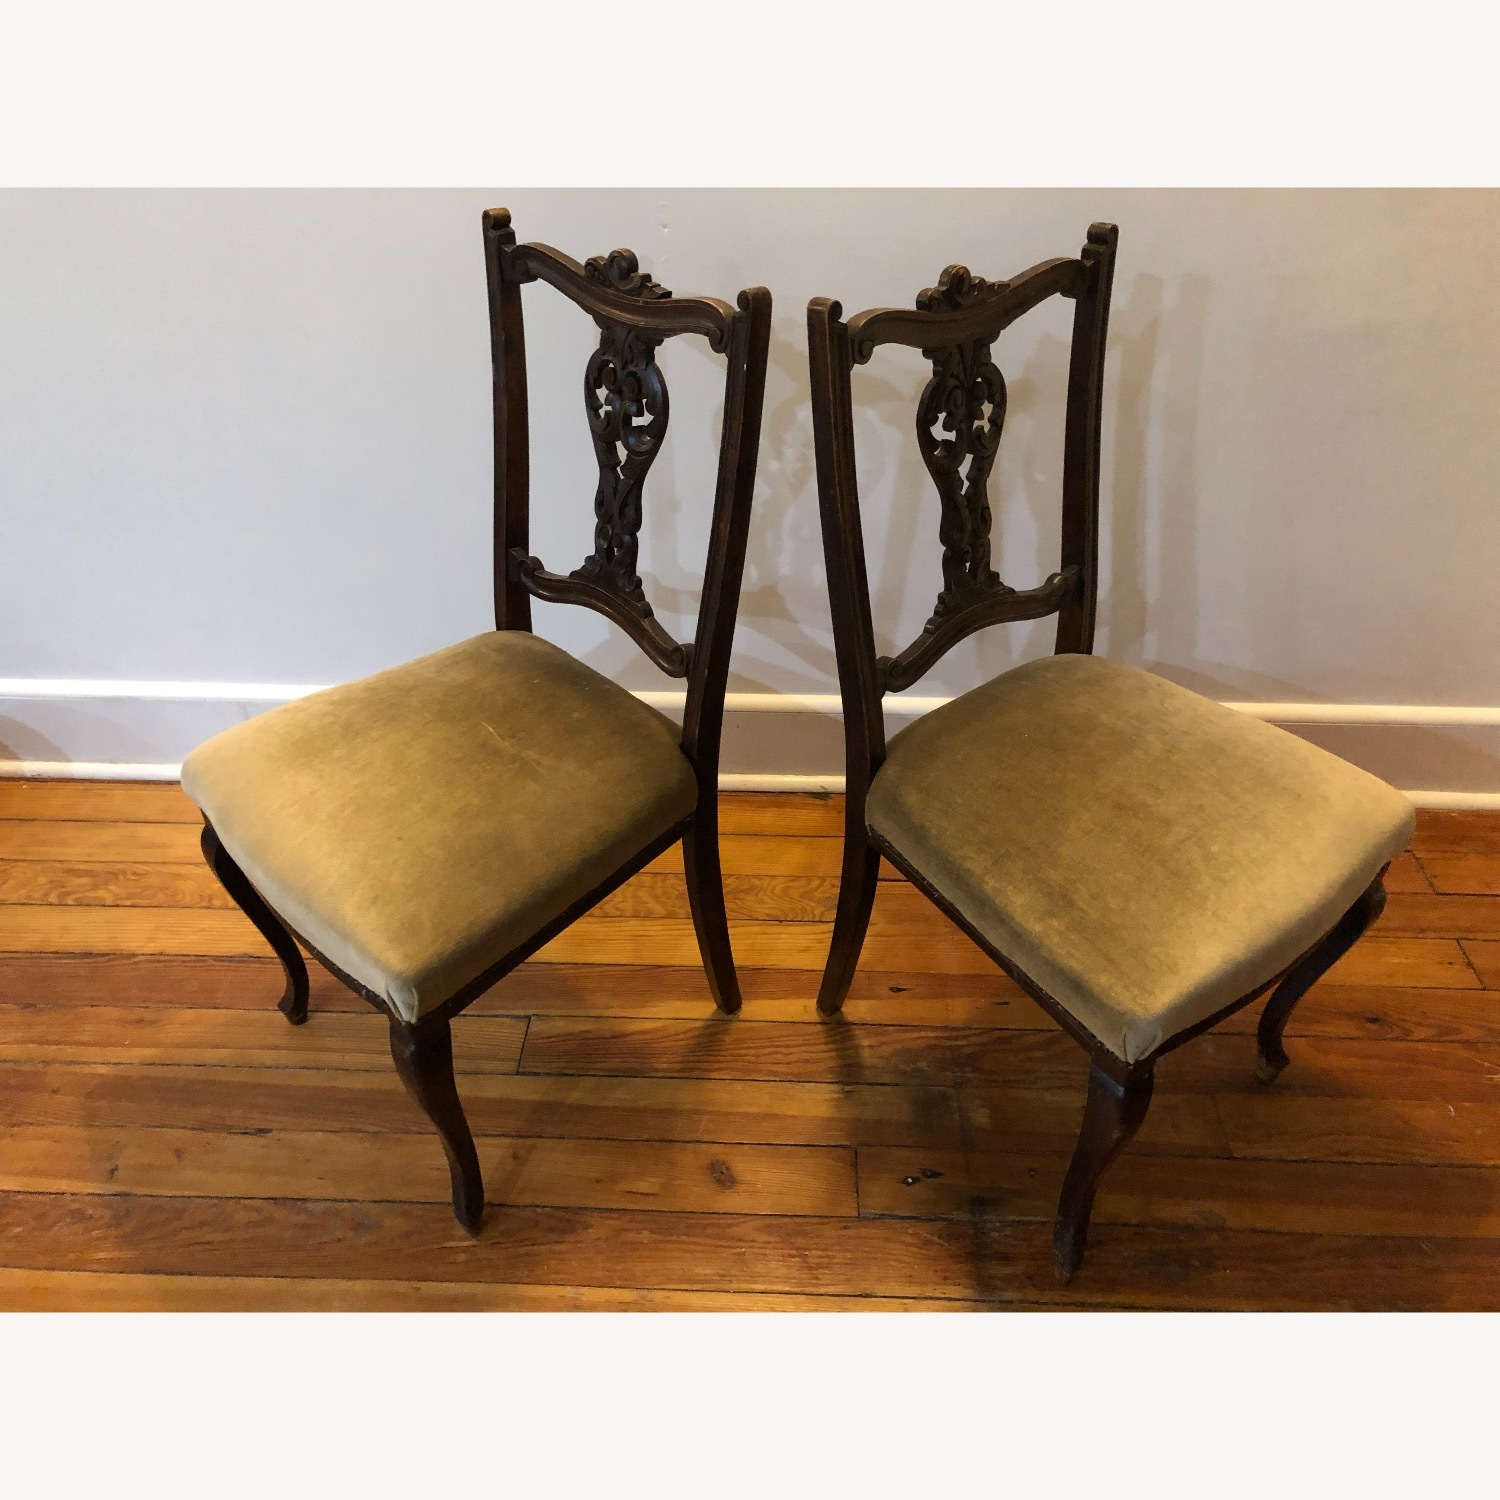 Victorian Accent Chairs - image-2